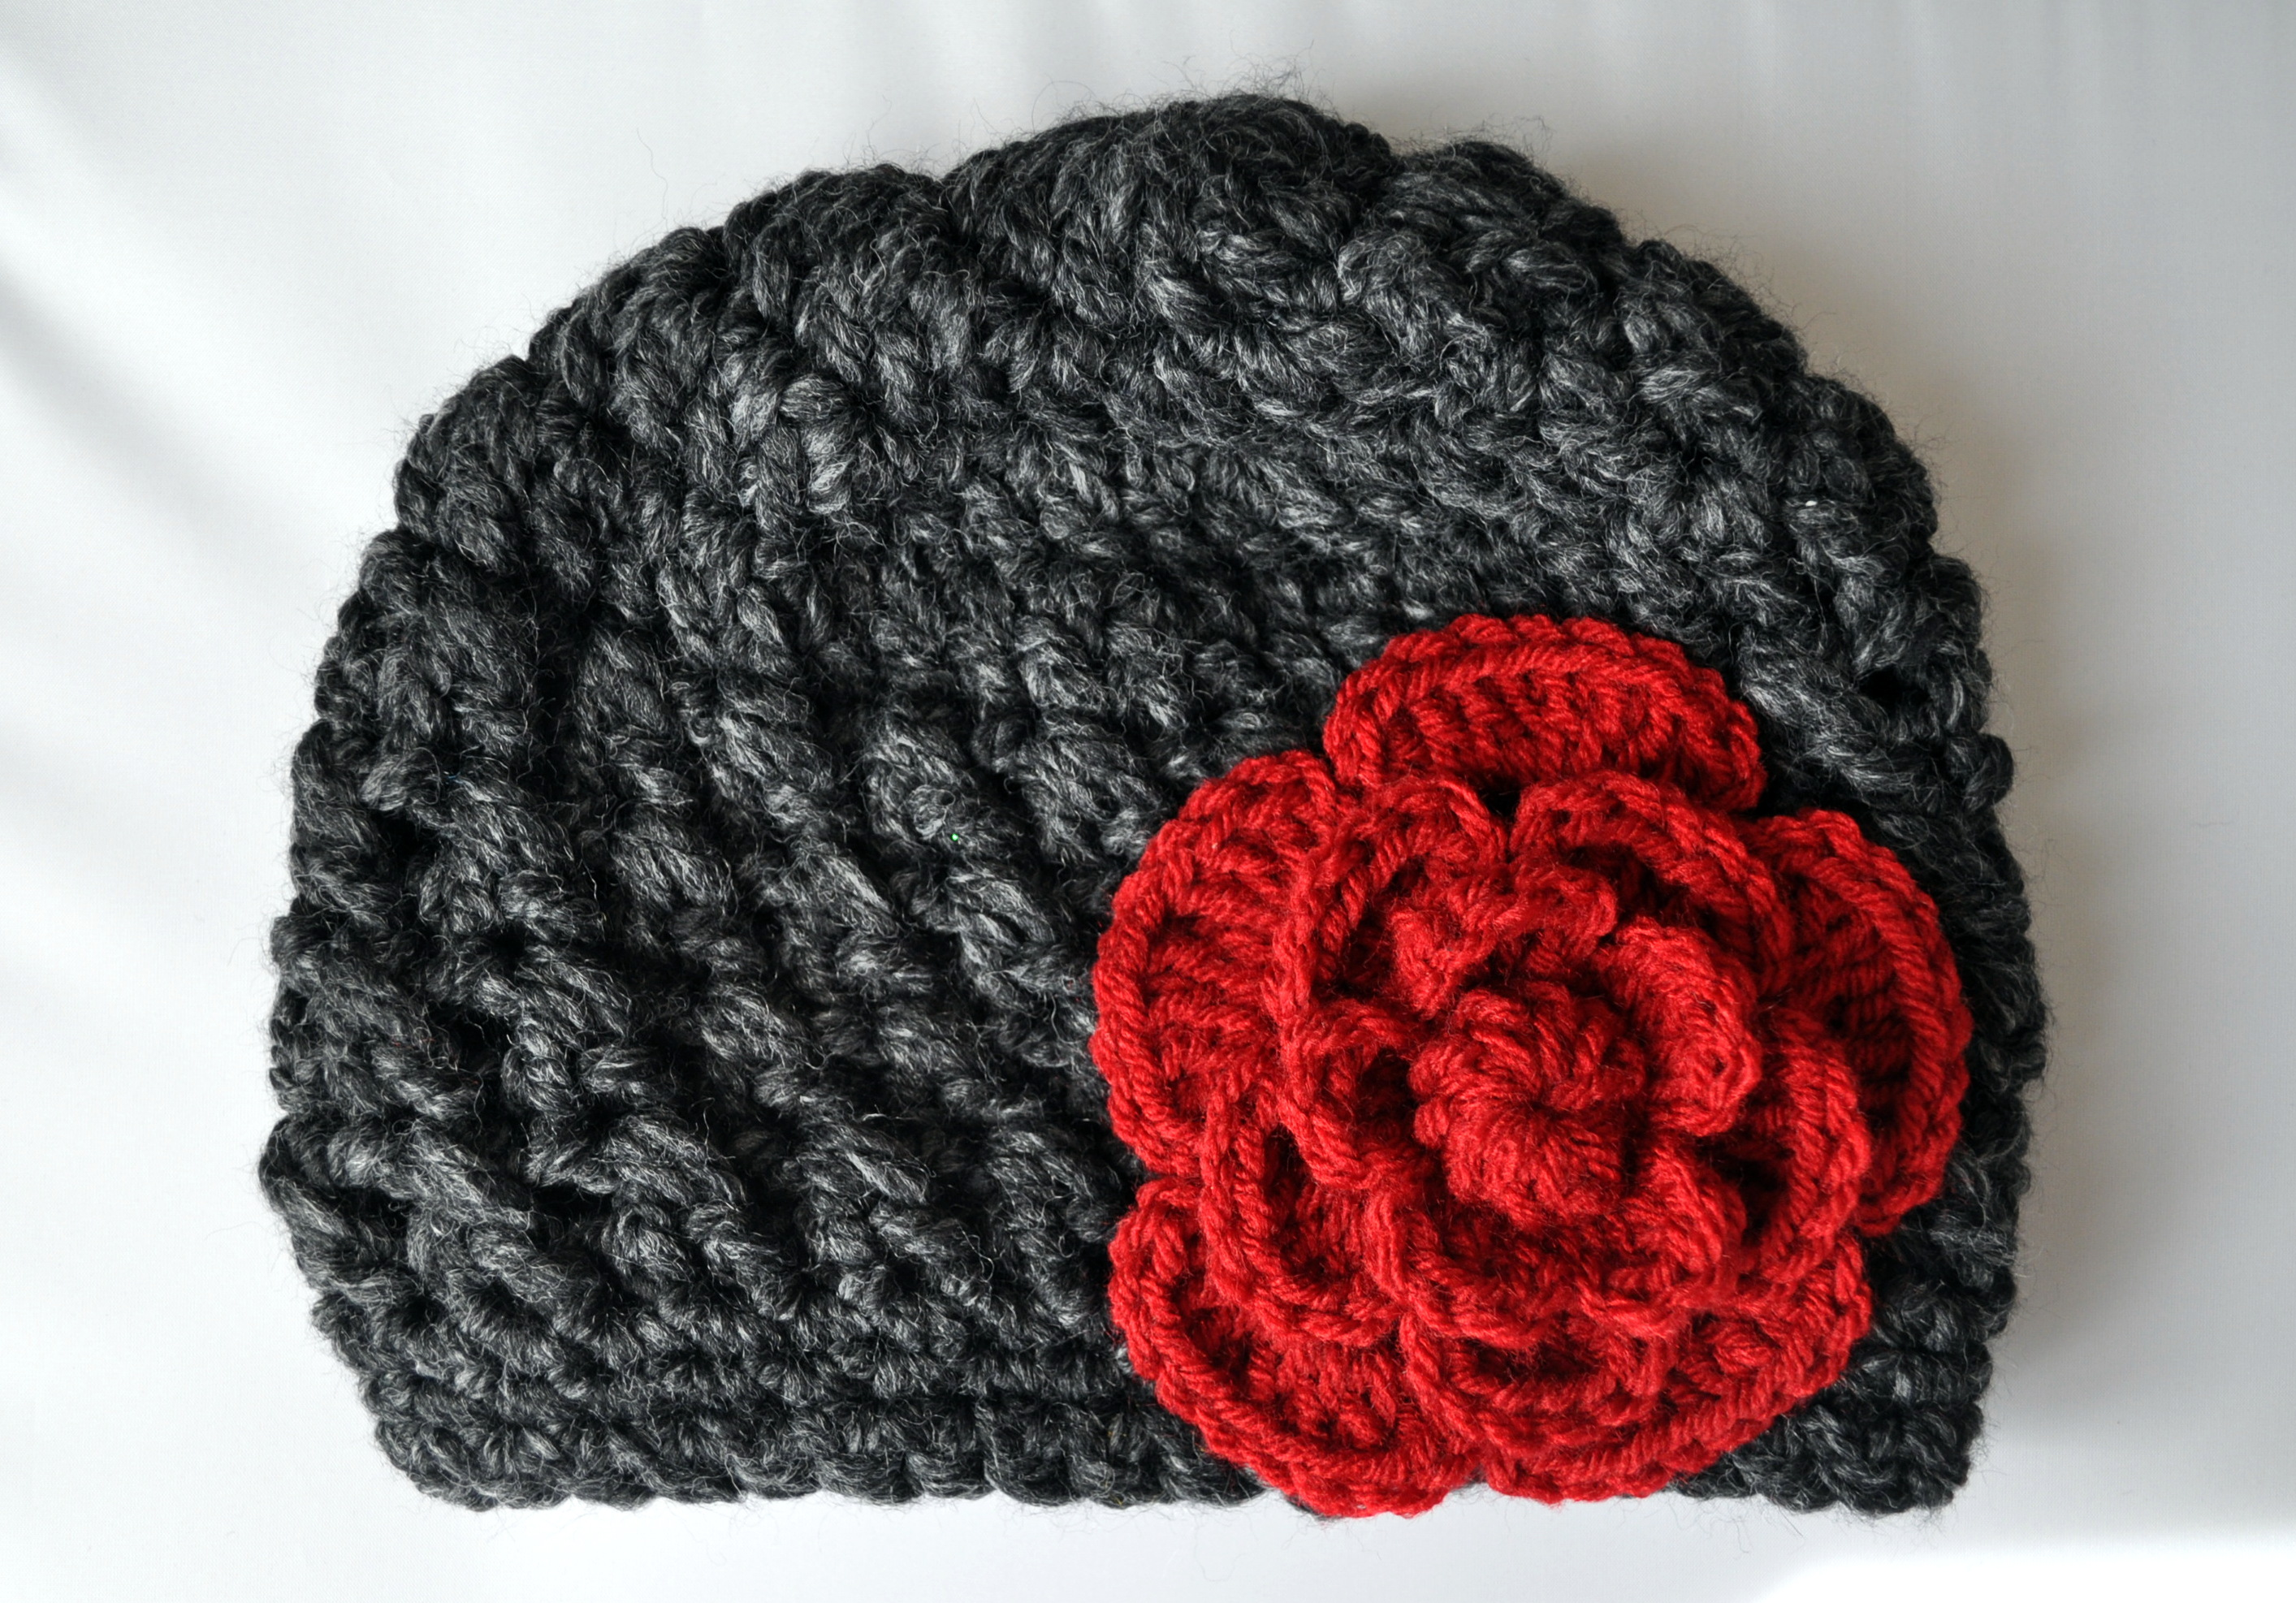 Crochet Patterns Scarfie Yarn : Crochet Chunky Flowered Cloche Pattern Classy Crochet